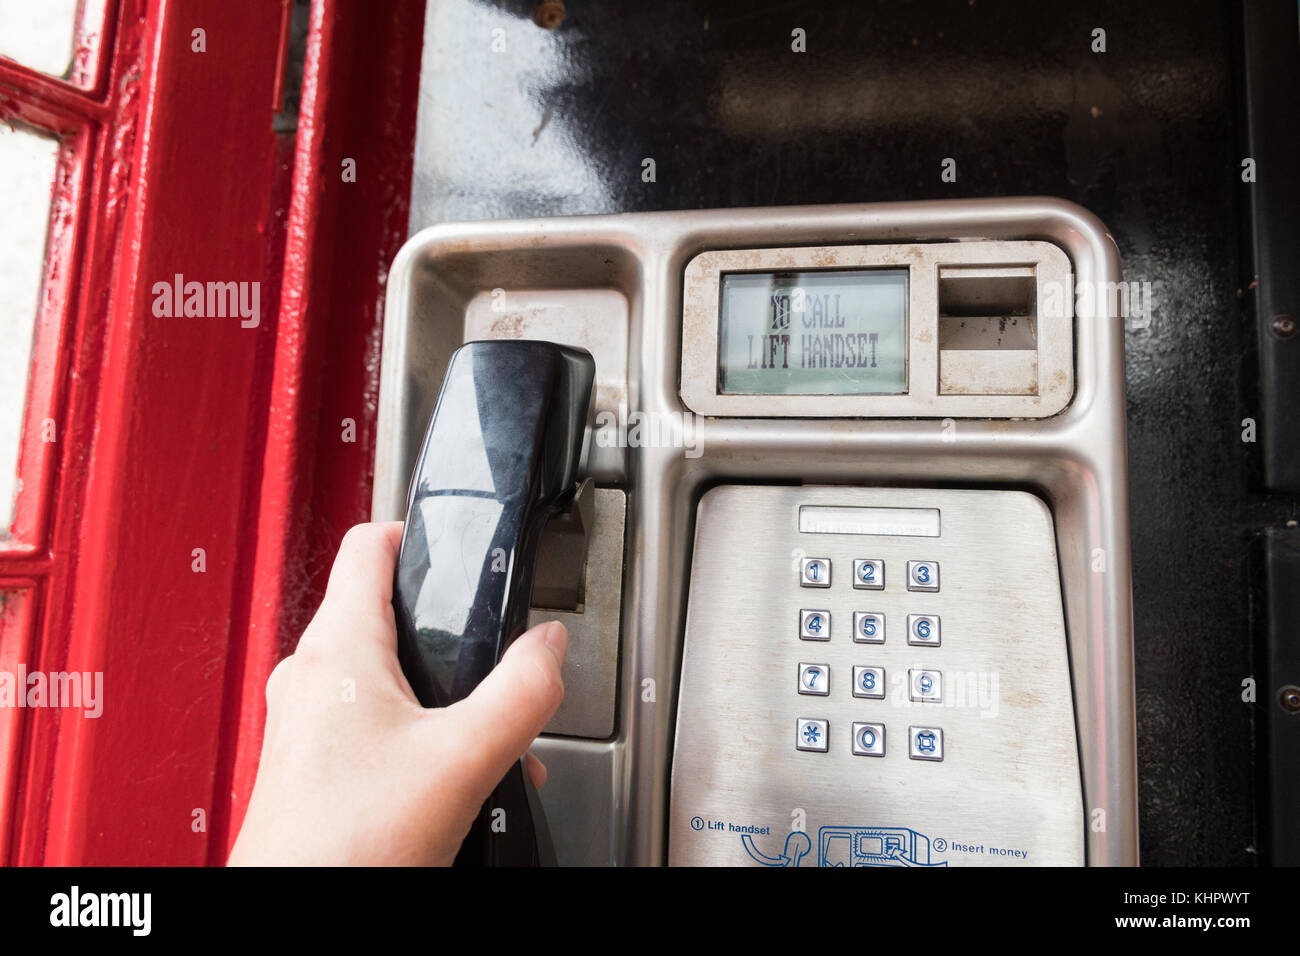 using a BT payphone in red telephone box - Stock Image